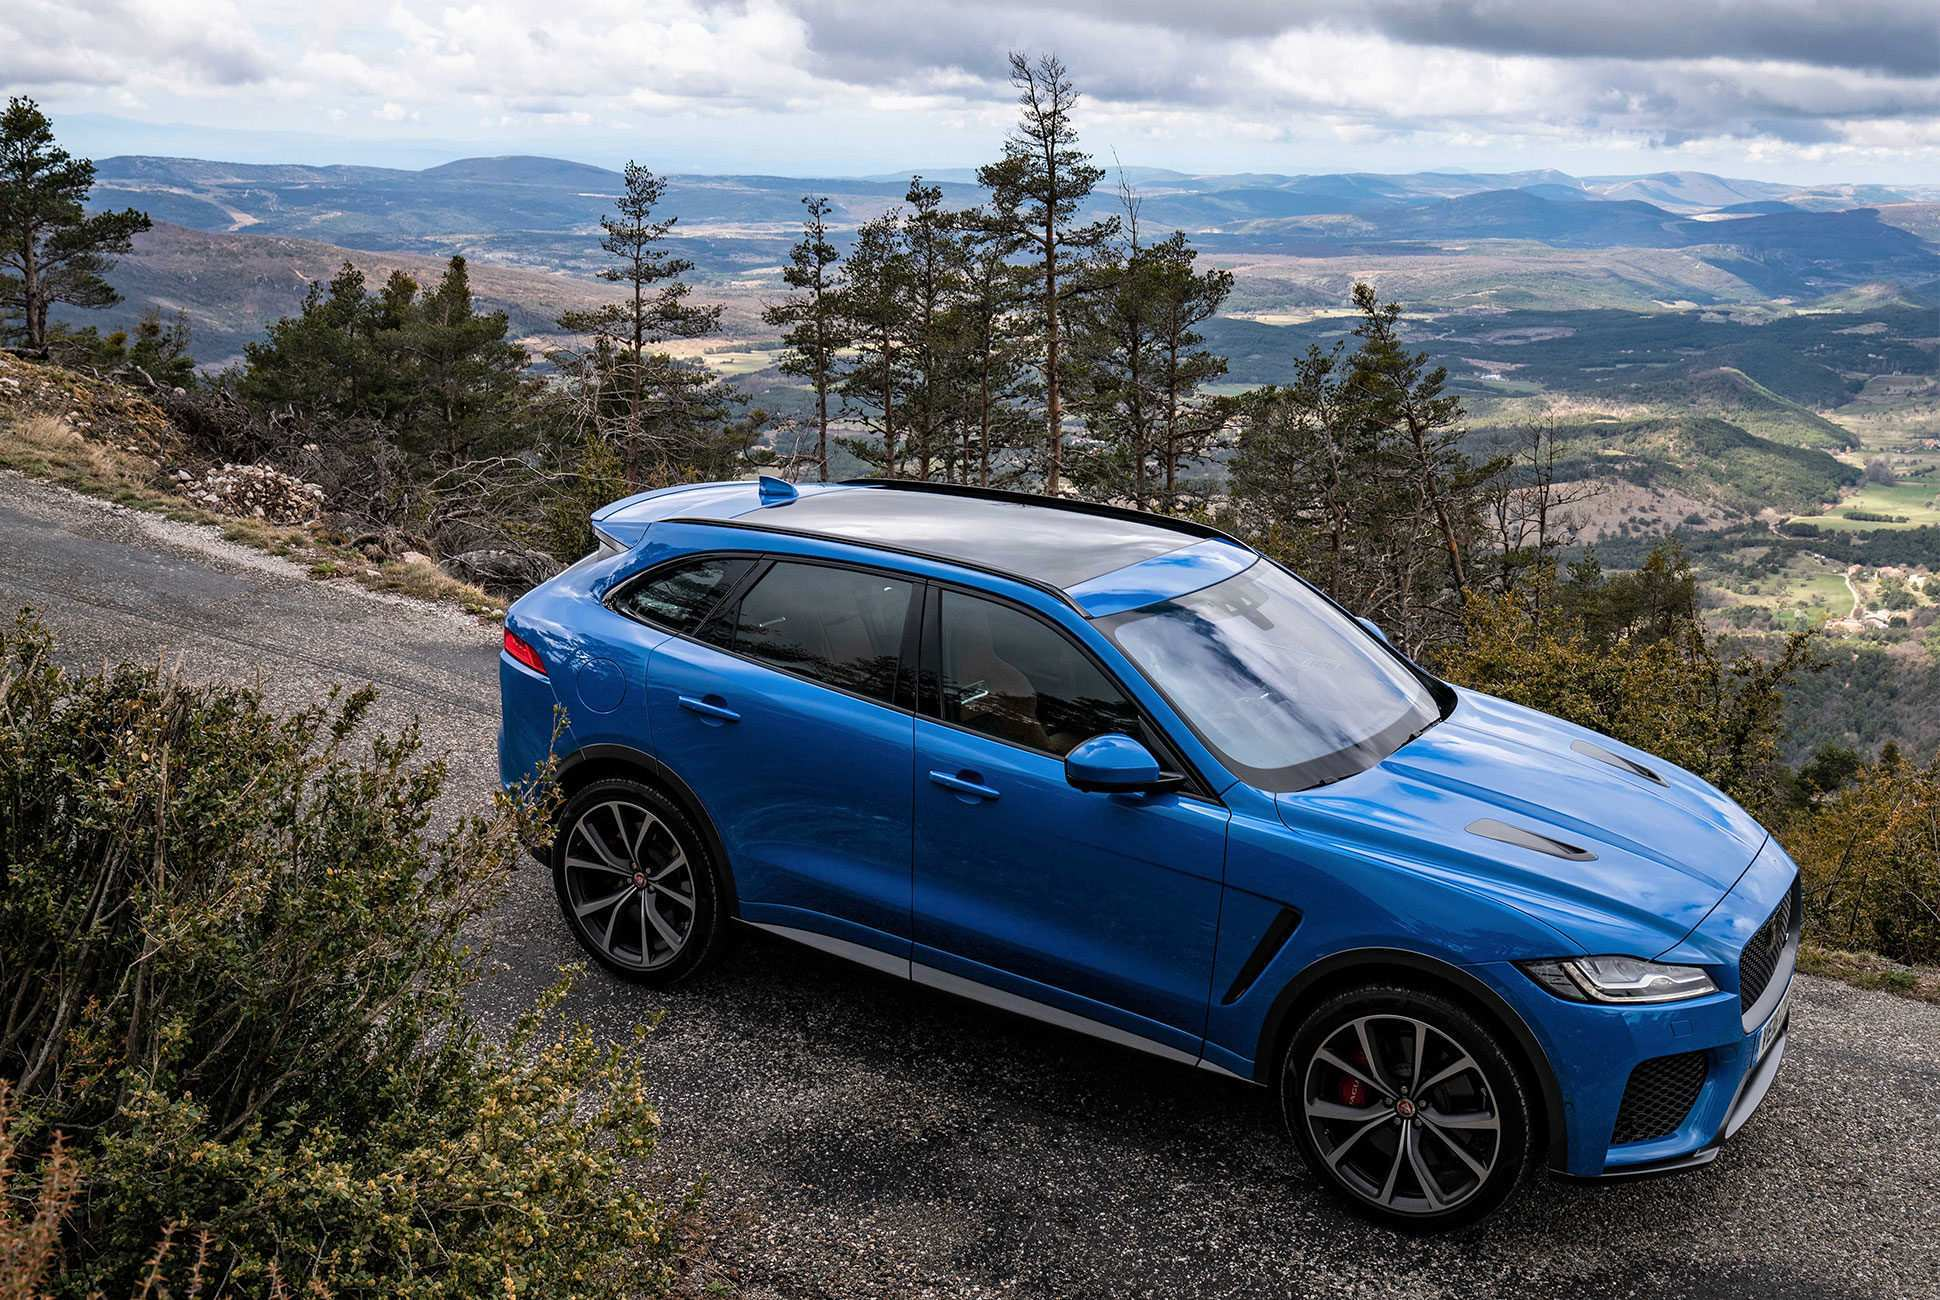 30 All New 2019 Jaguar F Pace Svr Price And Review